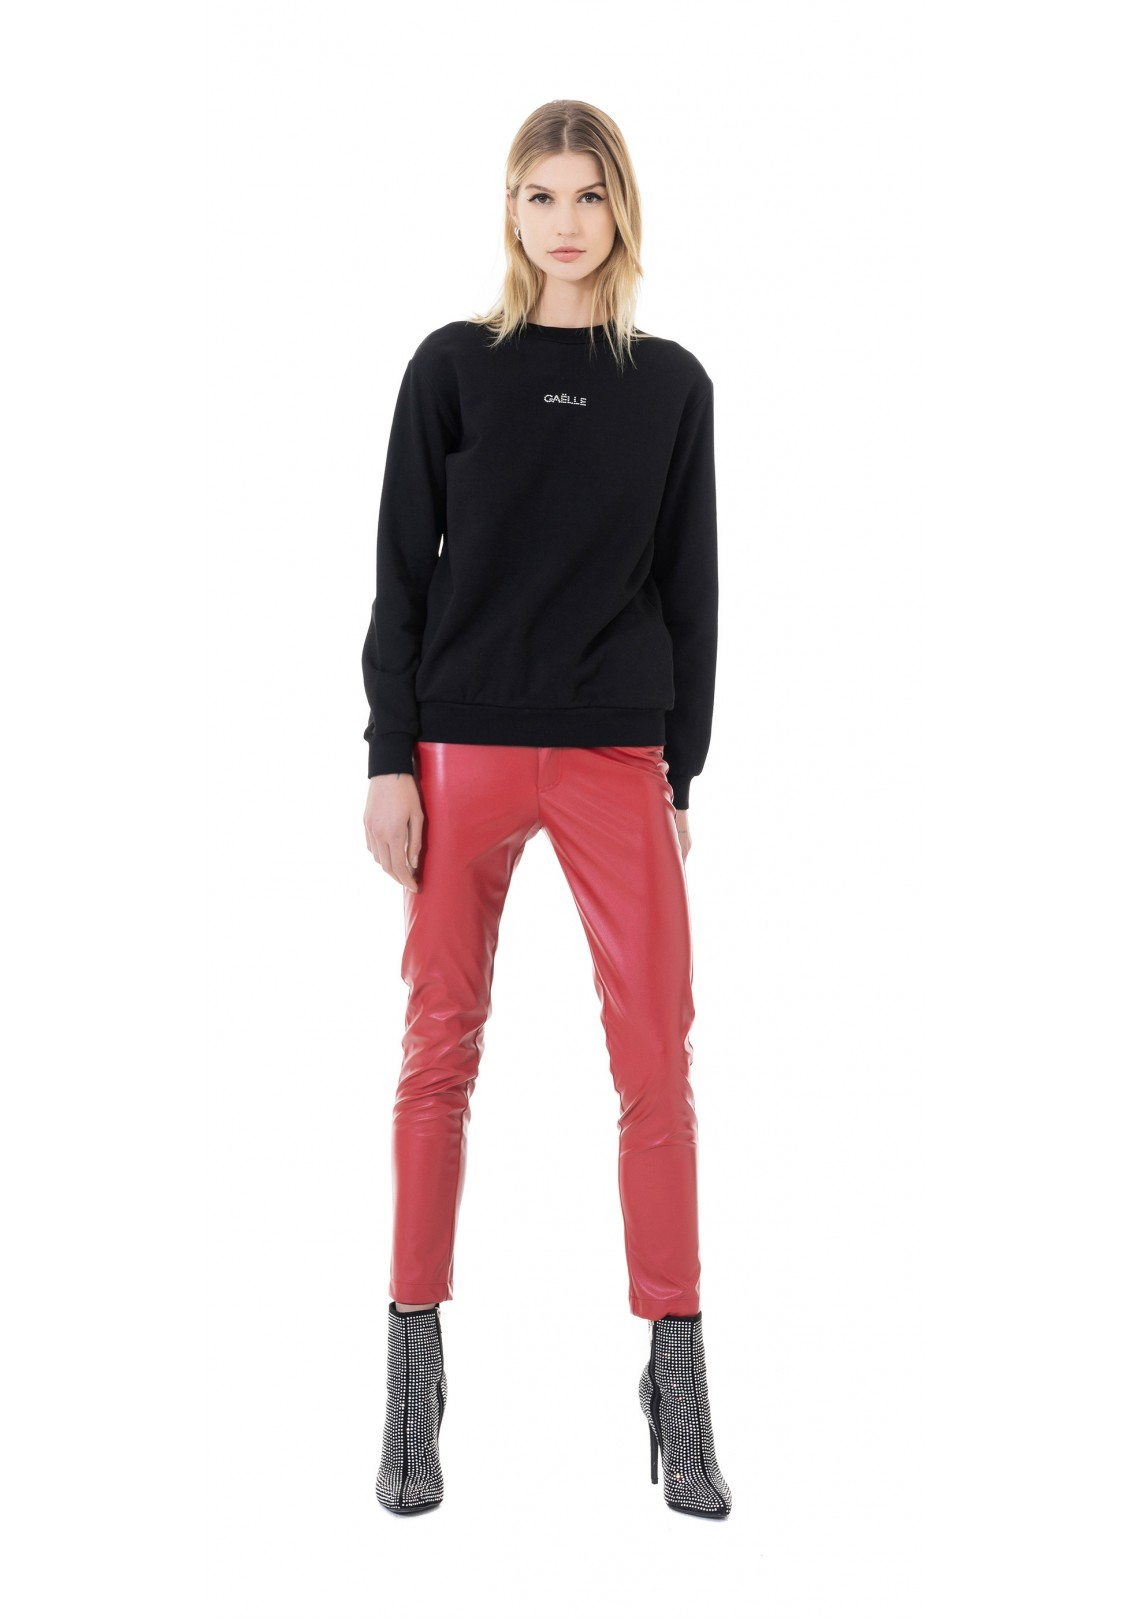 SWEATSHIRT - GBD4721 - GAELLE PARIS